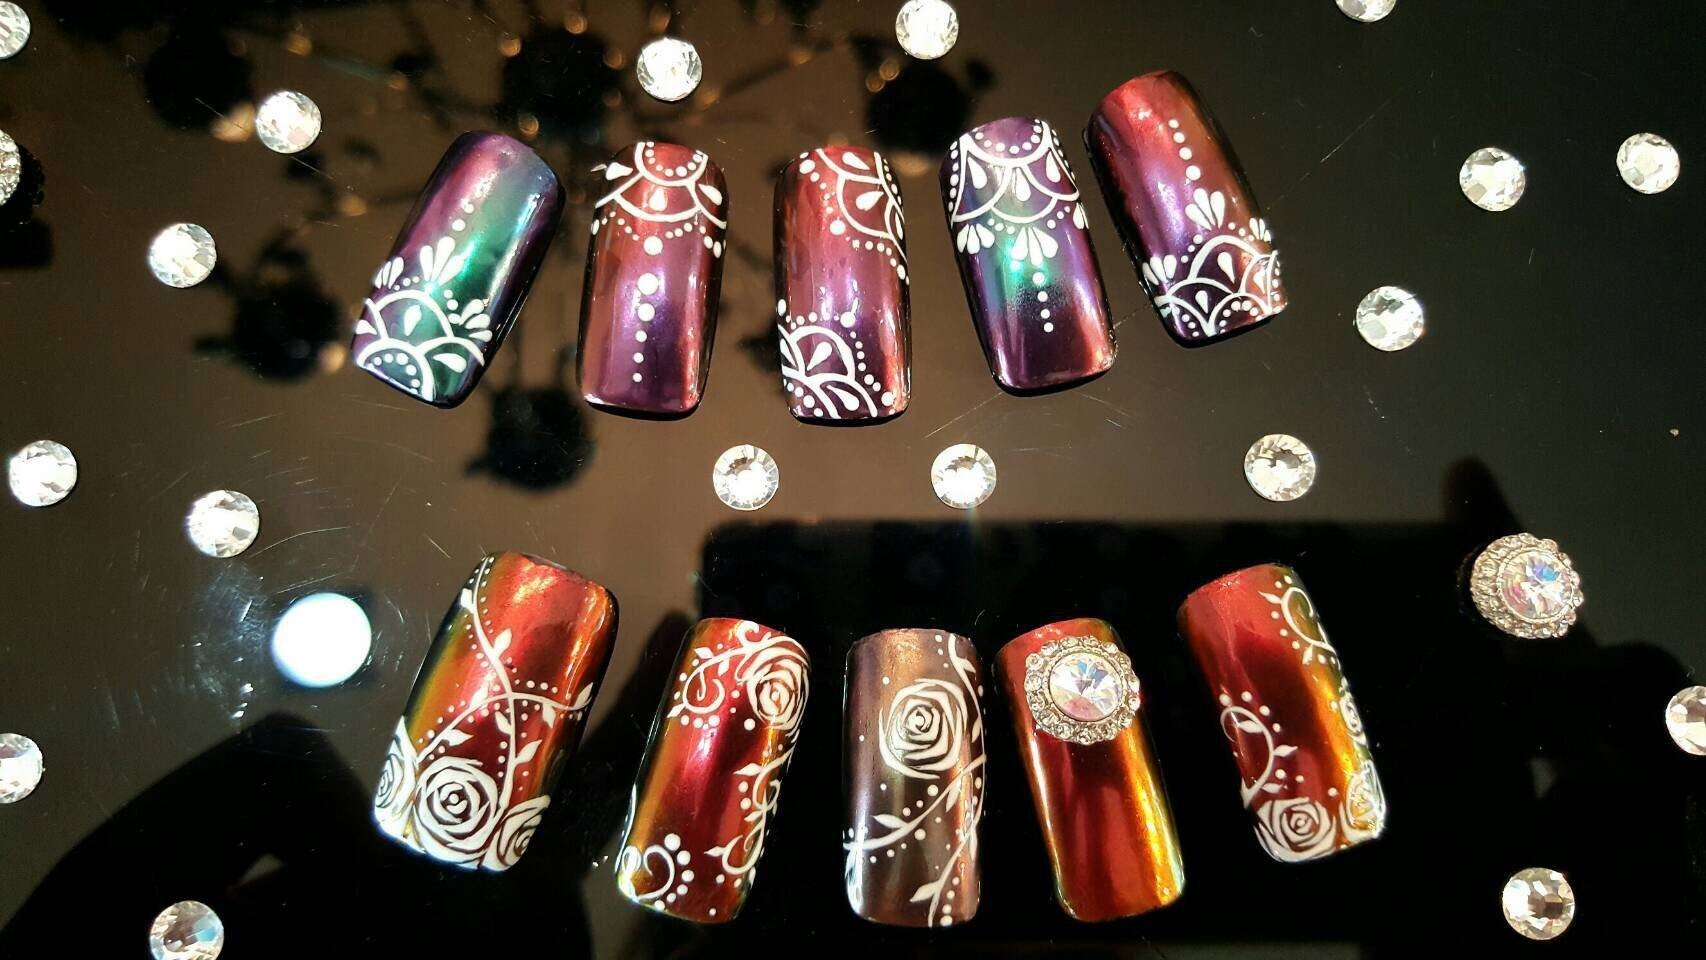 Nails Studio The Chill Park 086-536-2799